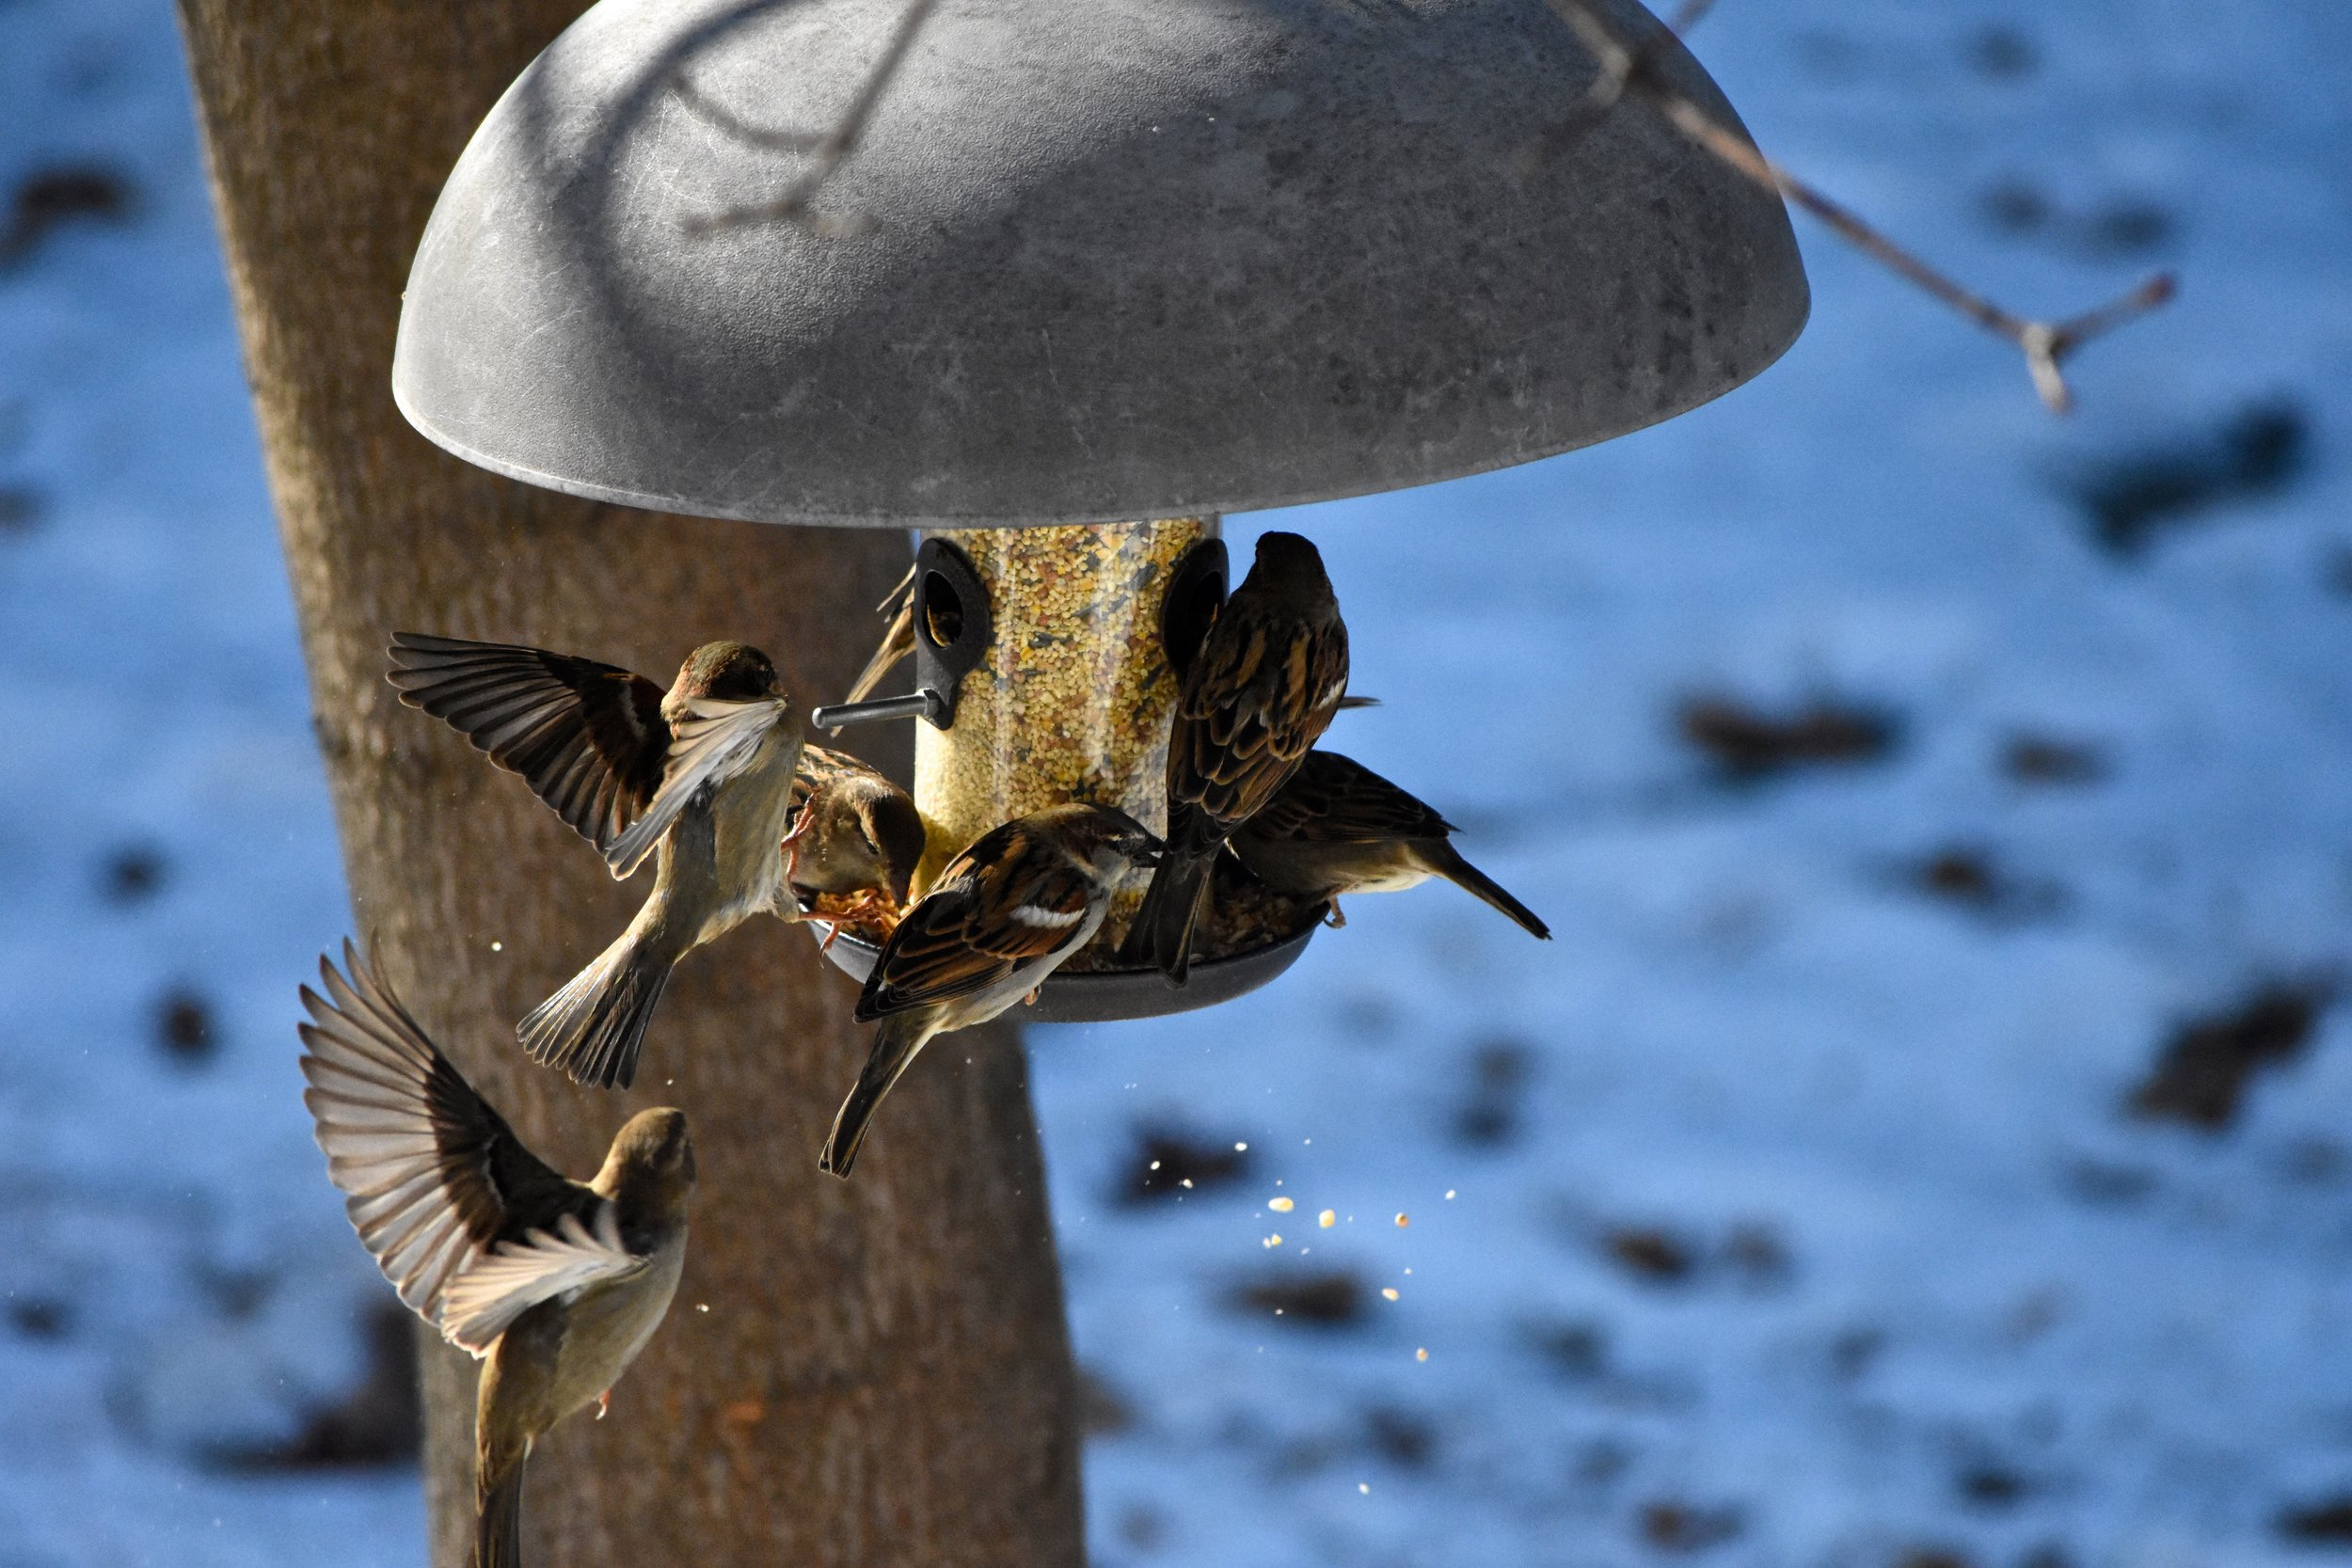 Sparrows desperately clamber for access to a feeder as food sources dwindle.